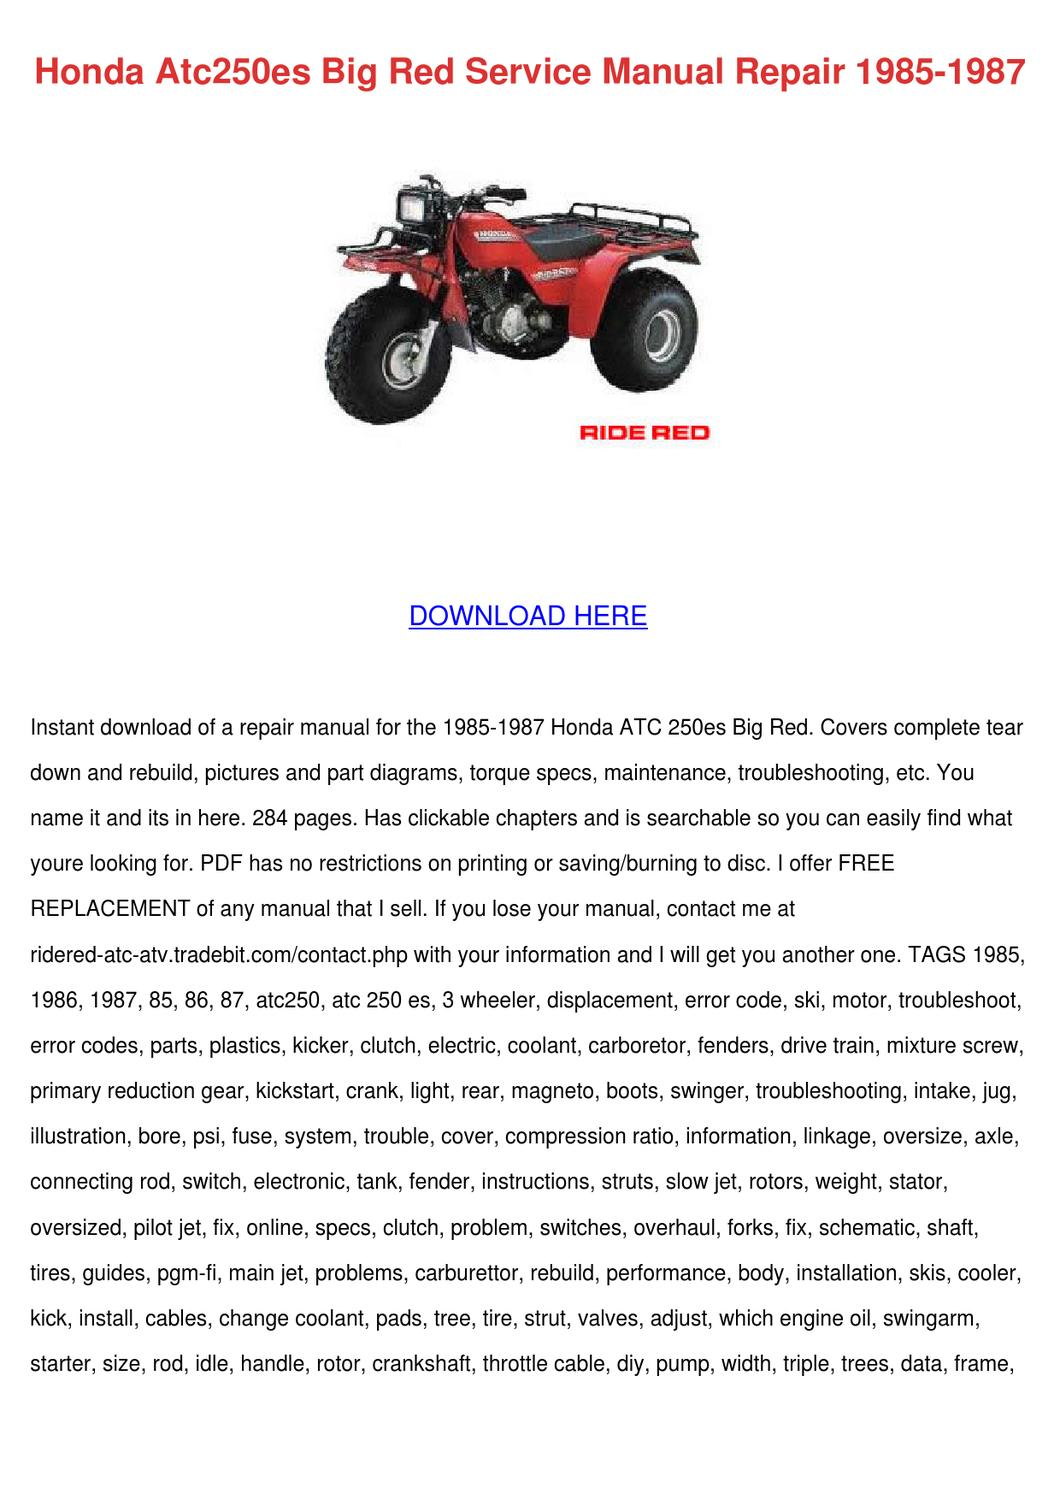 honda atc250es big red service manual repair